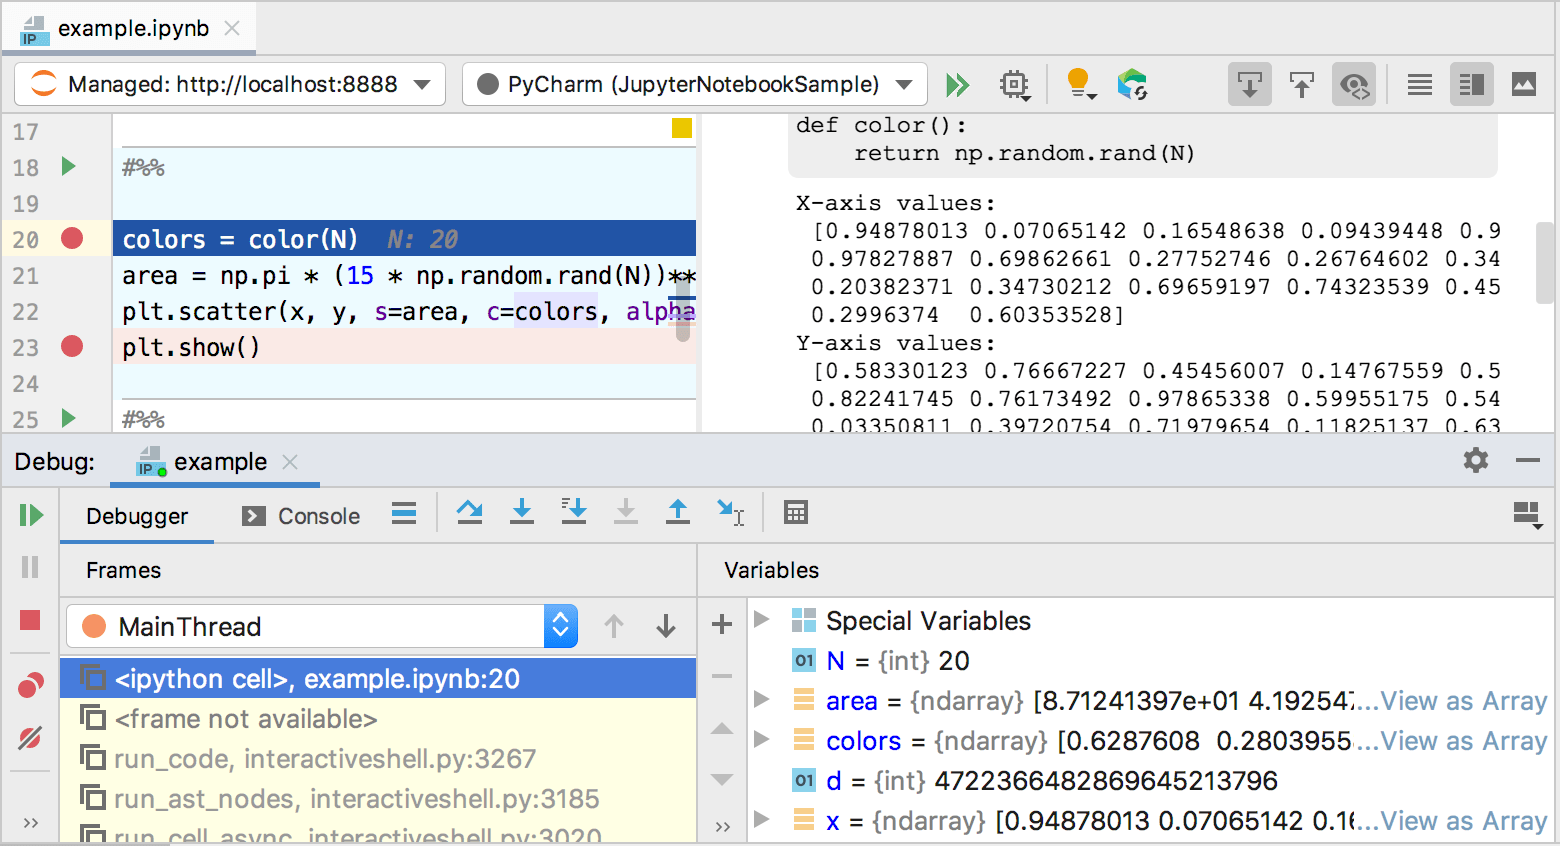 Jupyter Notebook Debugger tool window